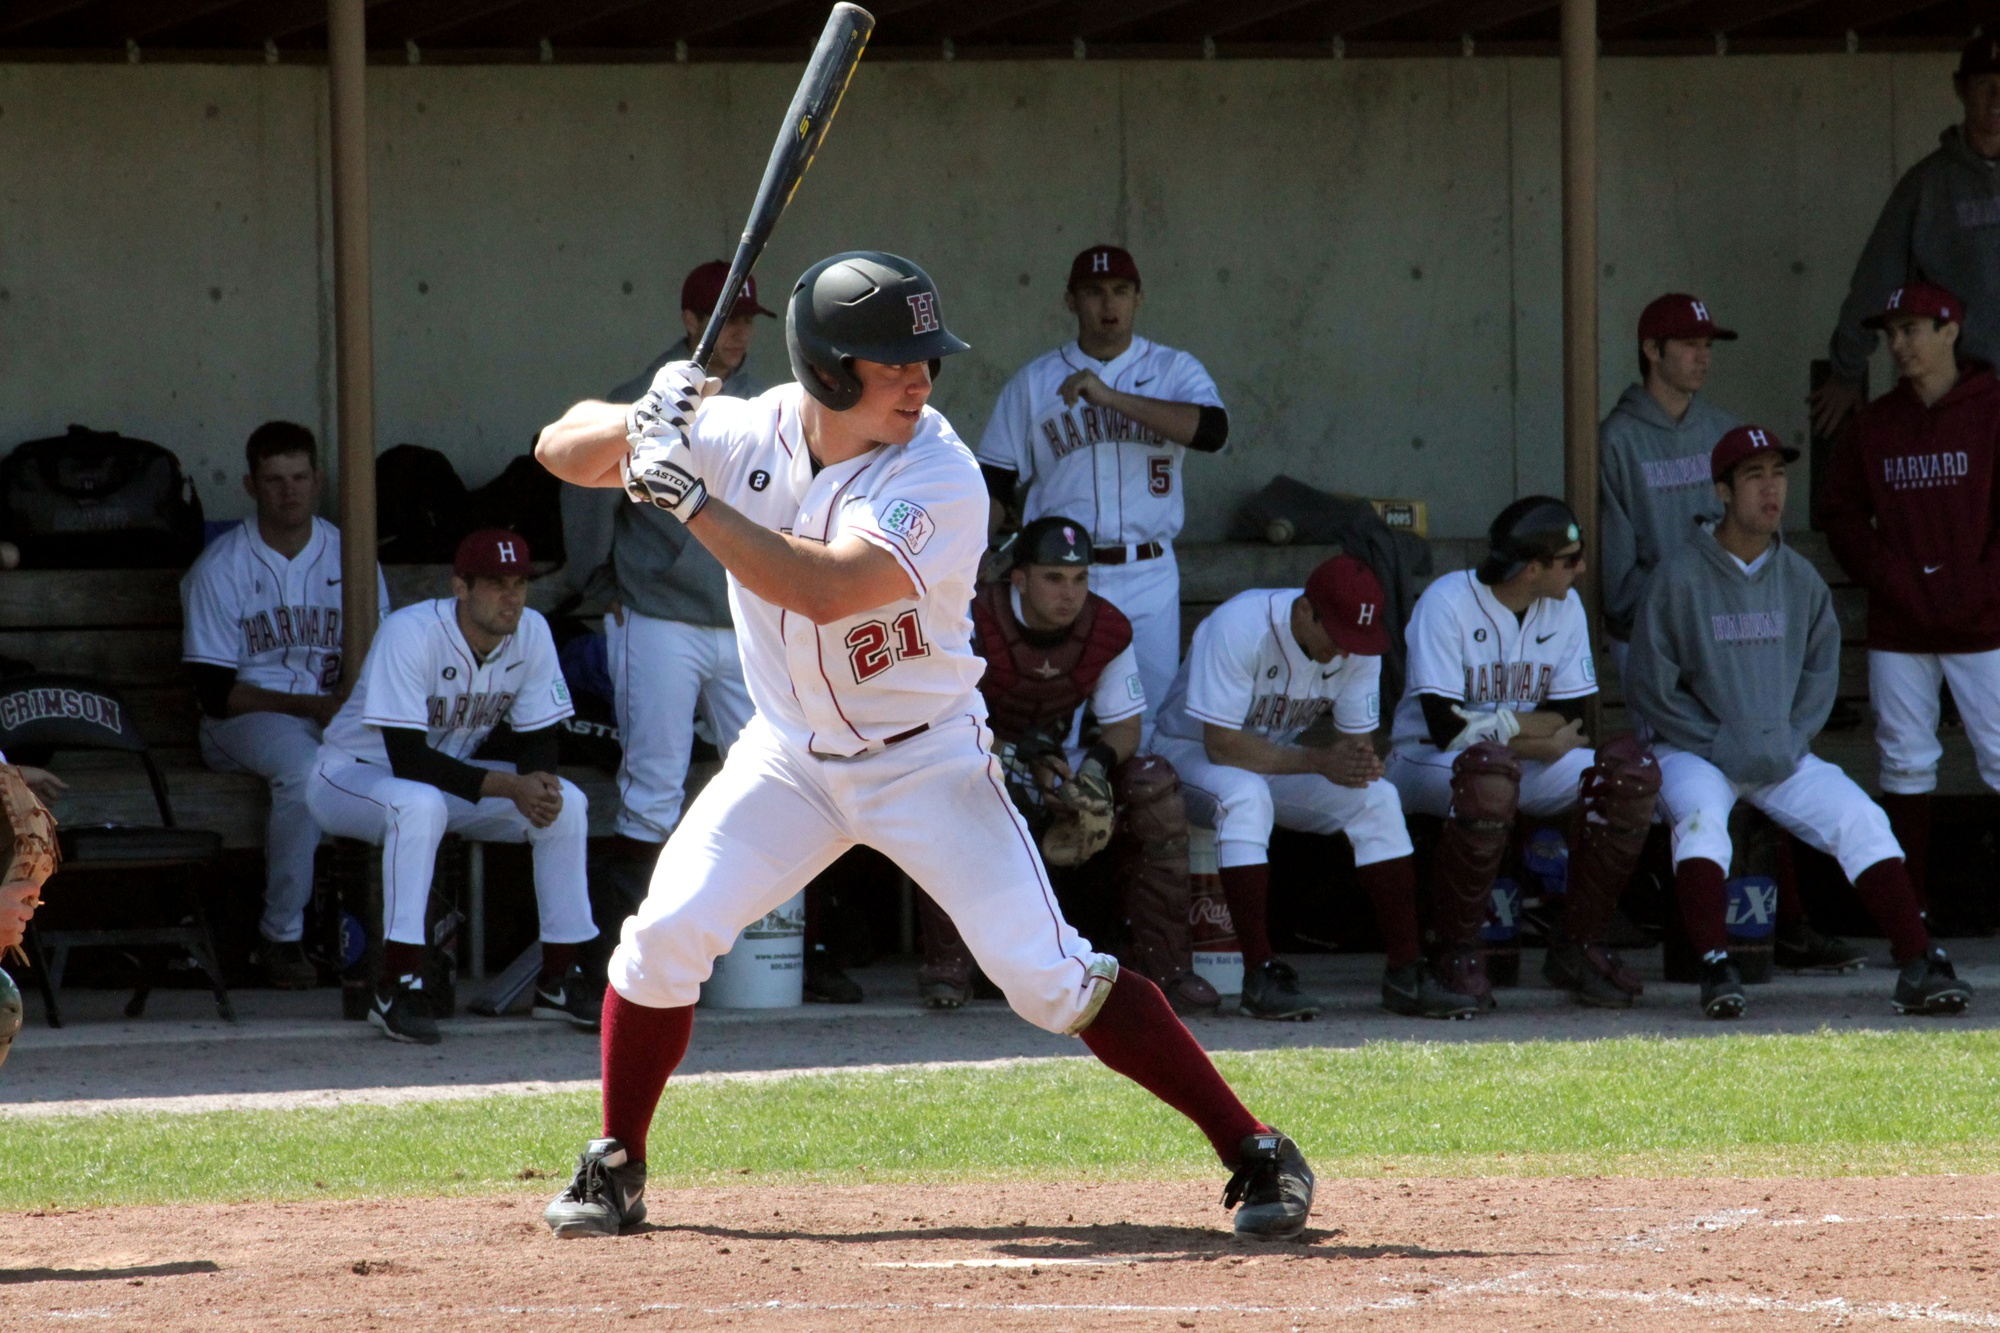 Junior outfielder Brandon Kregel, shown here in previous action, tallied four hits in Tuesday's doubleheader. After winning the first game in extra innings, the Harvard baseball team would drop the second contest by a score of 6-2.